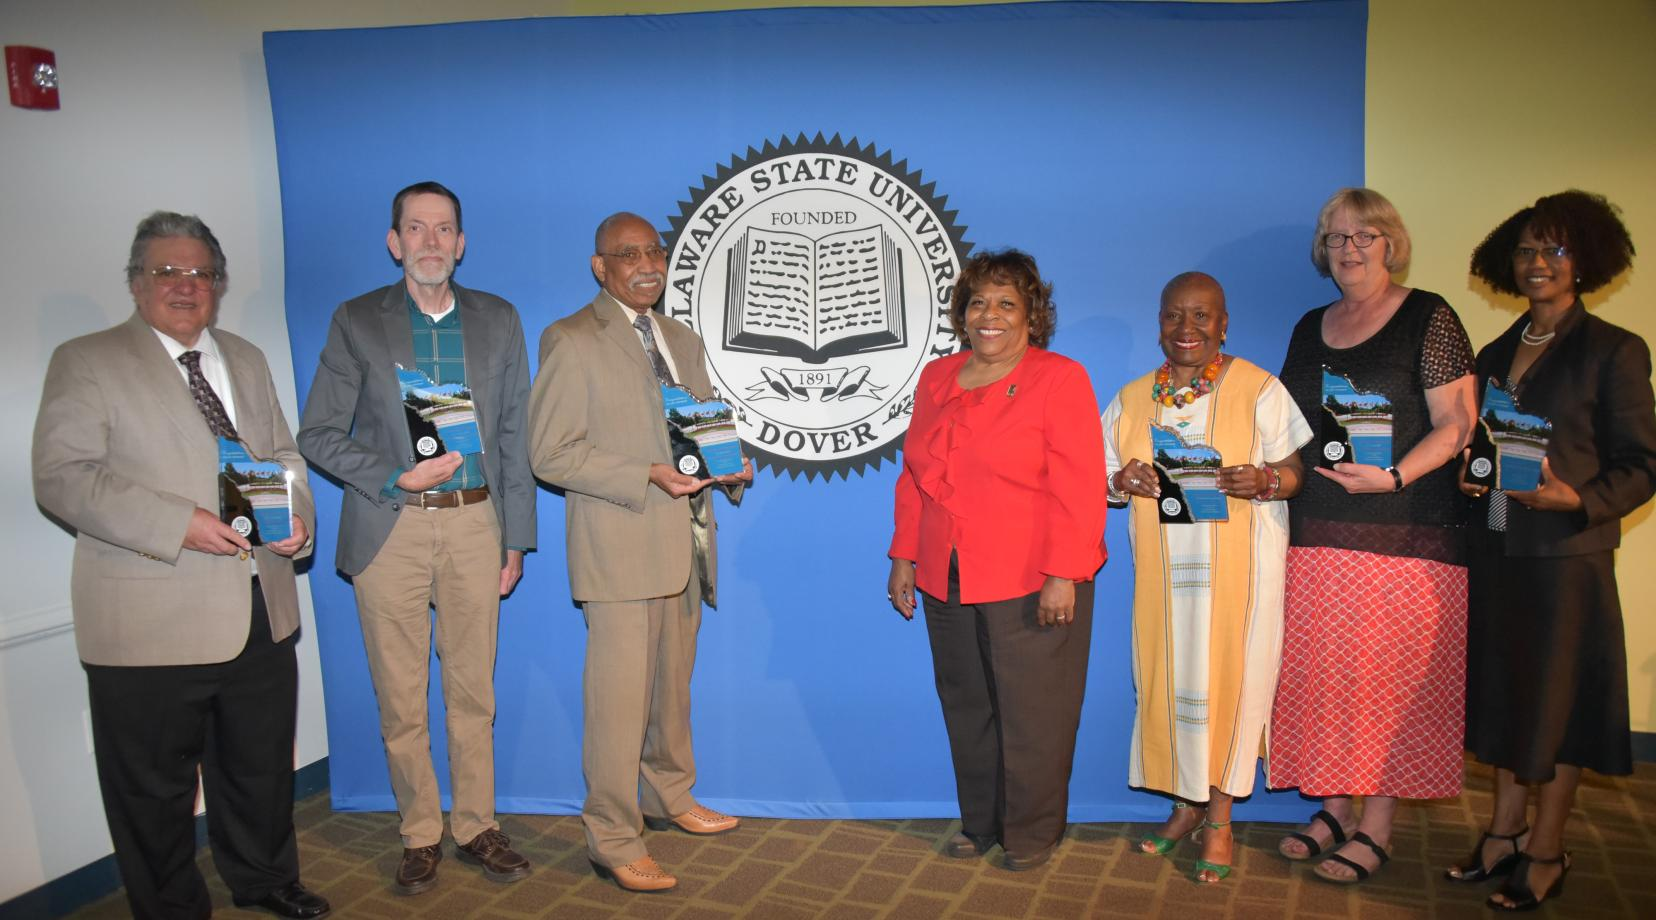 (L-r) 2018-2019 retirees Dr. Peter DiMaria, Dr. Andrew Lloyd, Dr. John Austin, University President Wilma Mishoe (who unretired herself to be the institution's CEO), Dr. Dolores Finger Wright, Dr. Janet Hill and Dr. Sheridan Quarless Kingsberry.